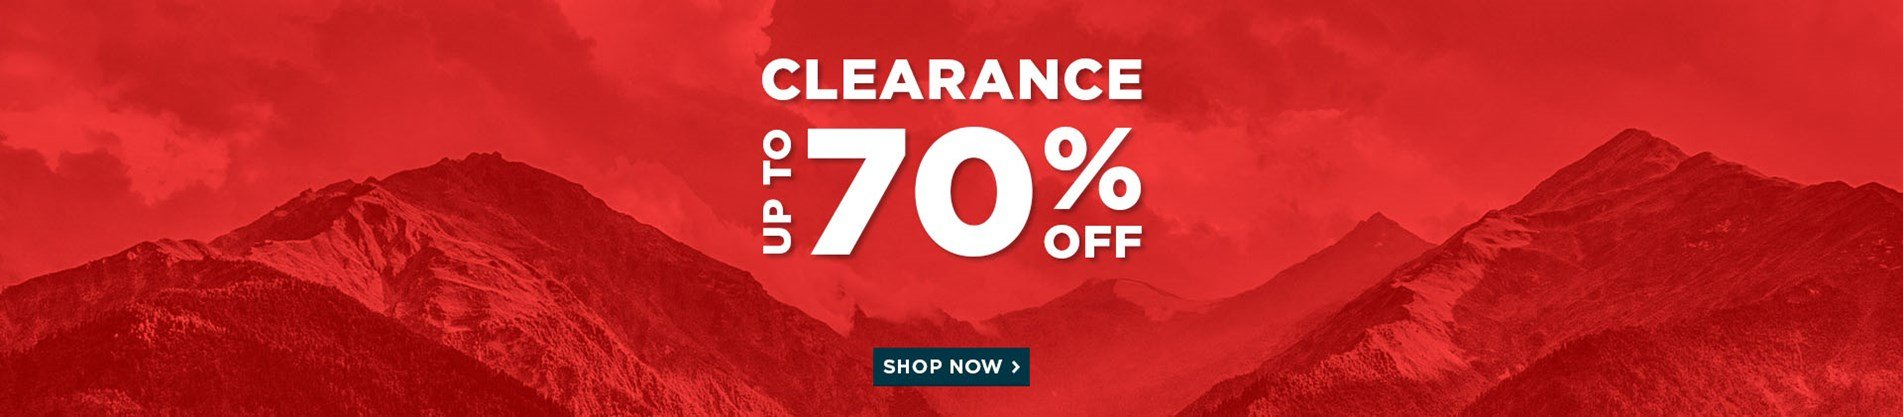 Clearance - Up To 70% Off!